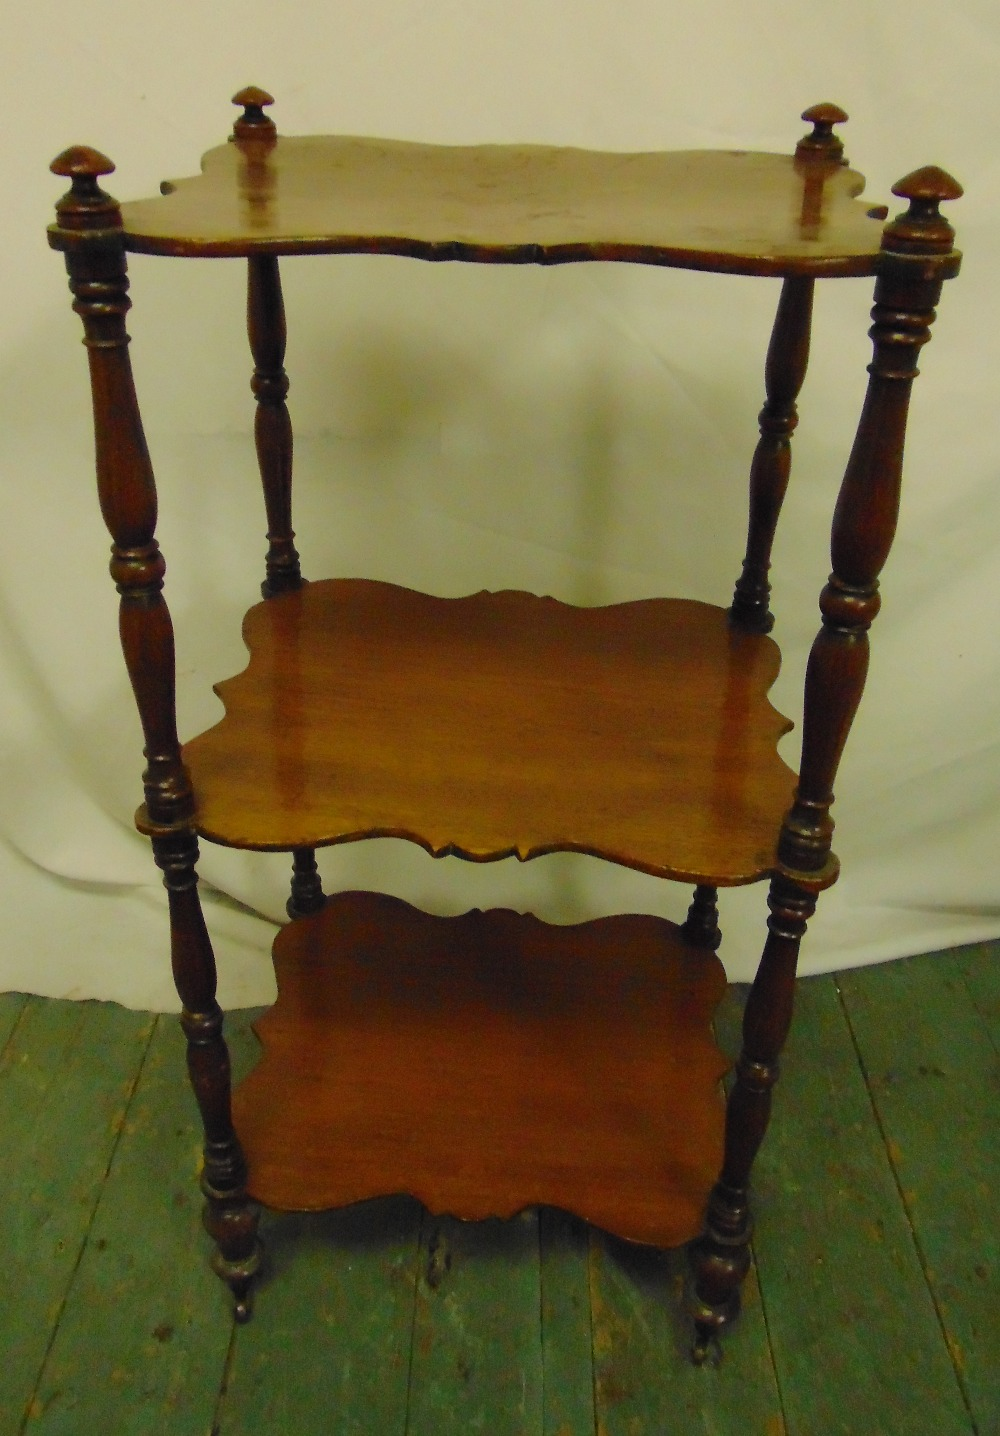 Lot 22 - A mahogany shaped rectangular three tier whatnot with four turned cylindrical supports, 82 x 38.5